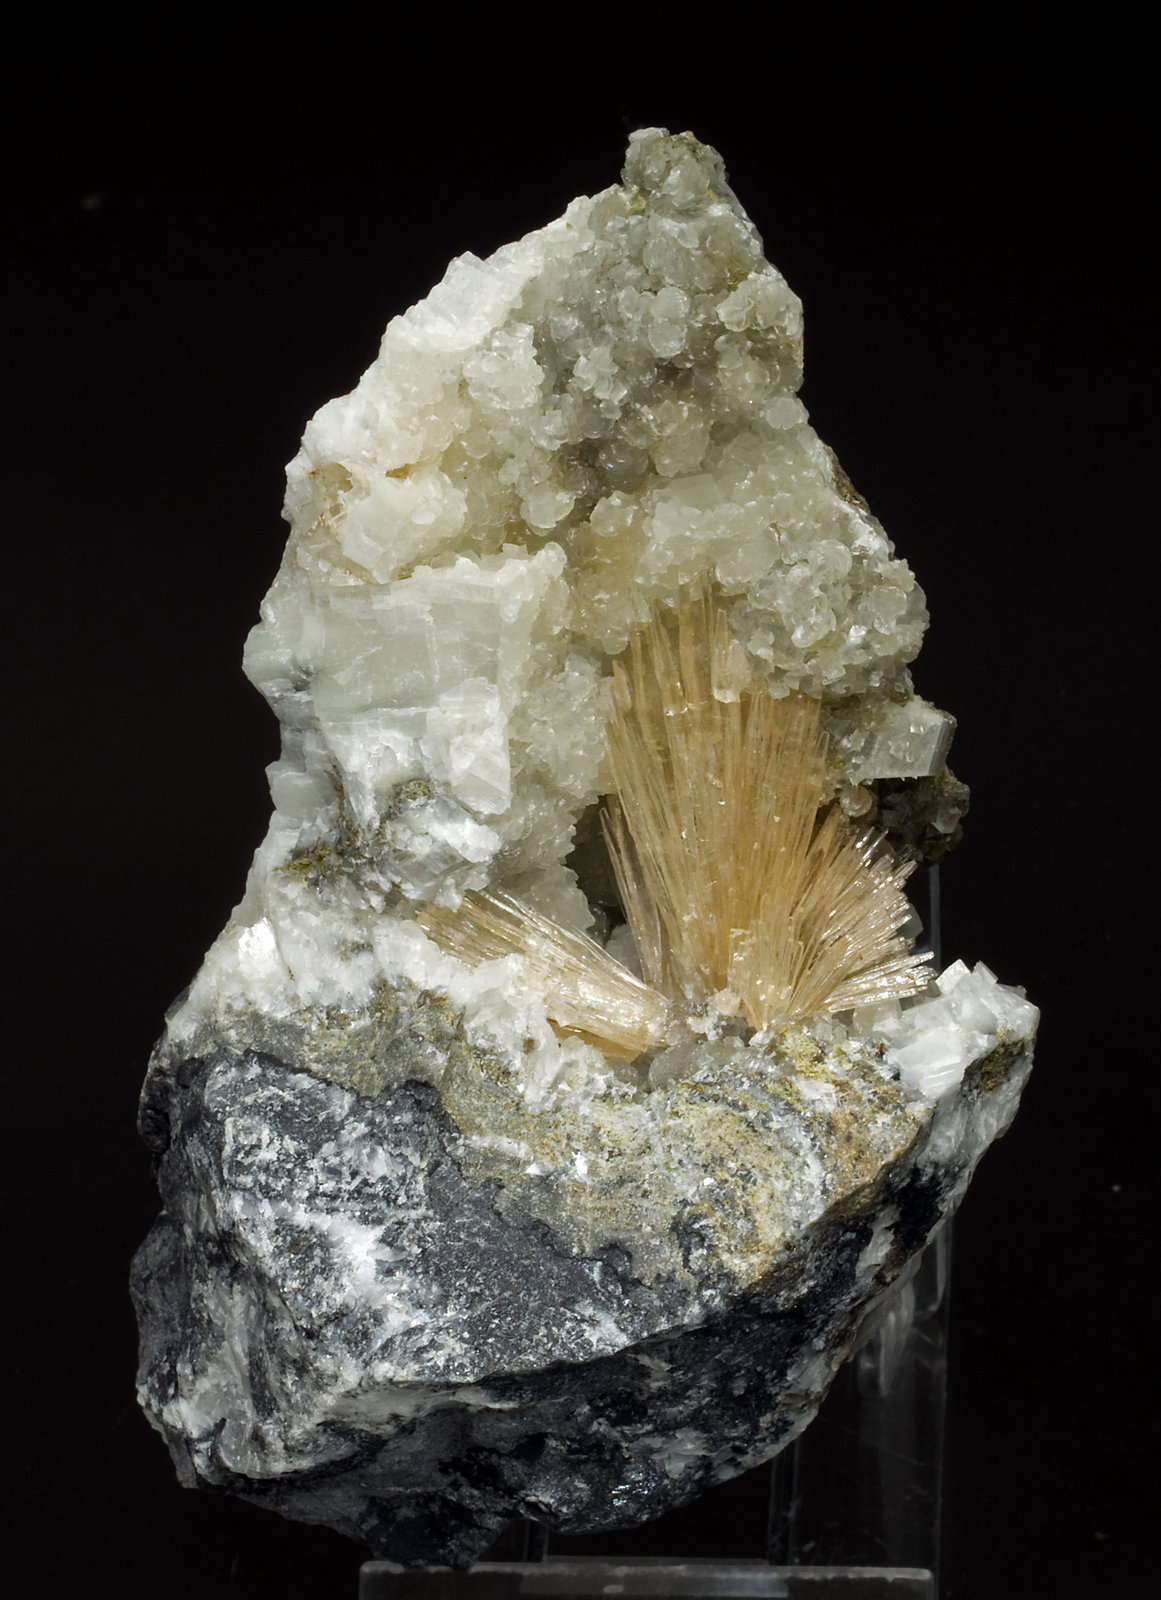 specimens/s_imagesV5/Aragonite-NE76V5f.jpg